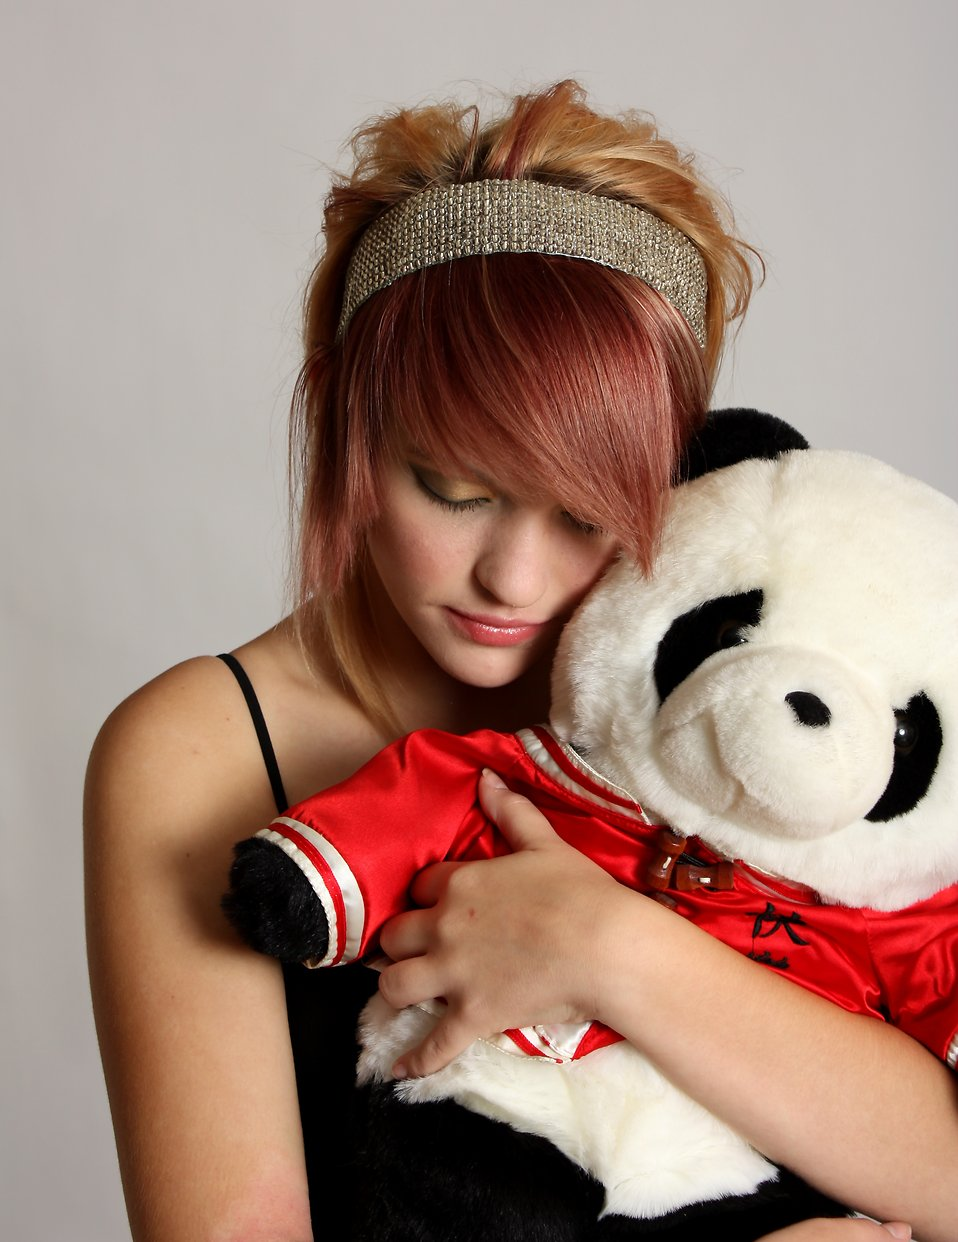 A beautiful young girl holding a stuffed panda bear : Free Stock Photo